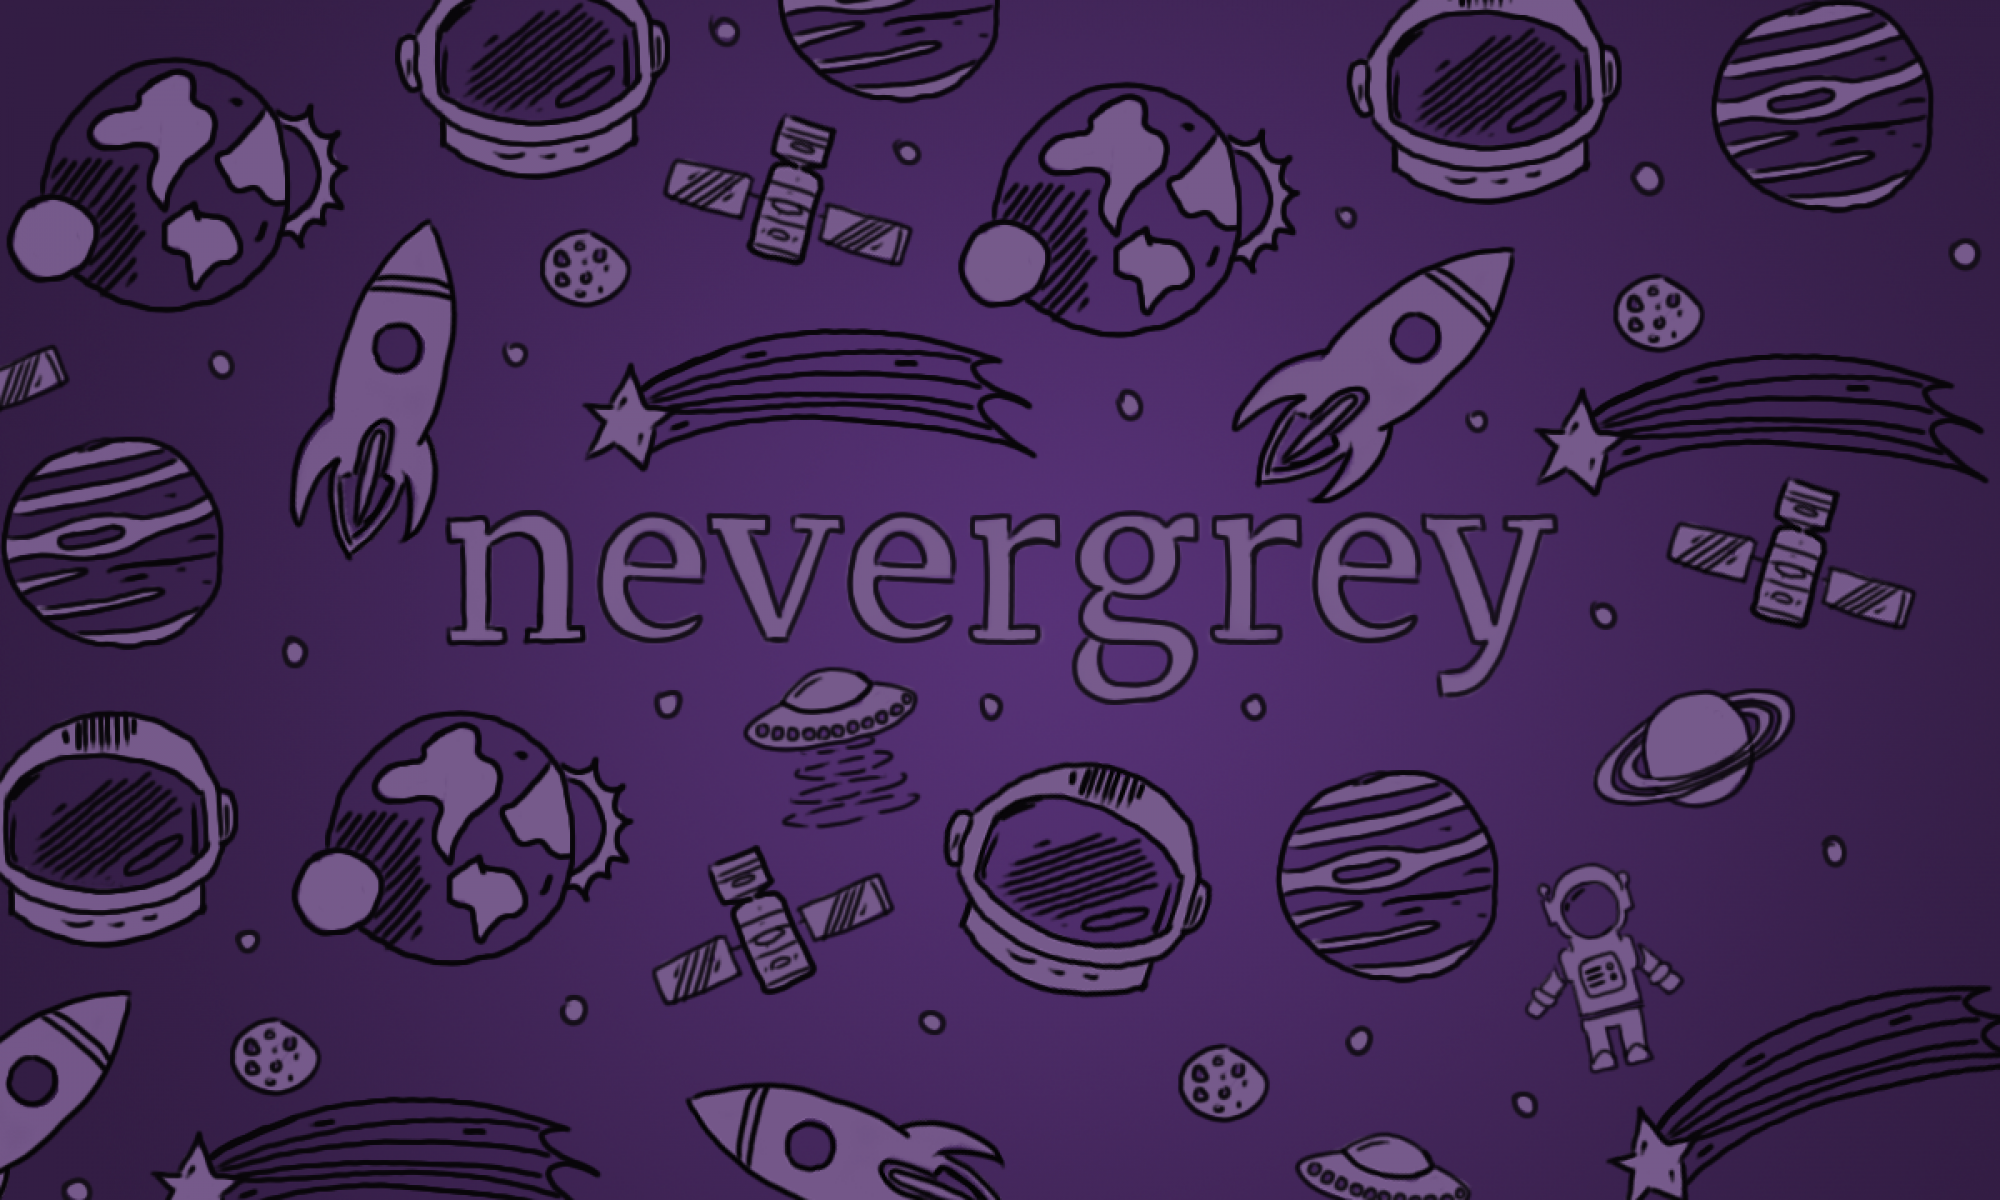 Nevergrey Space